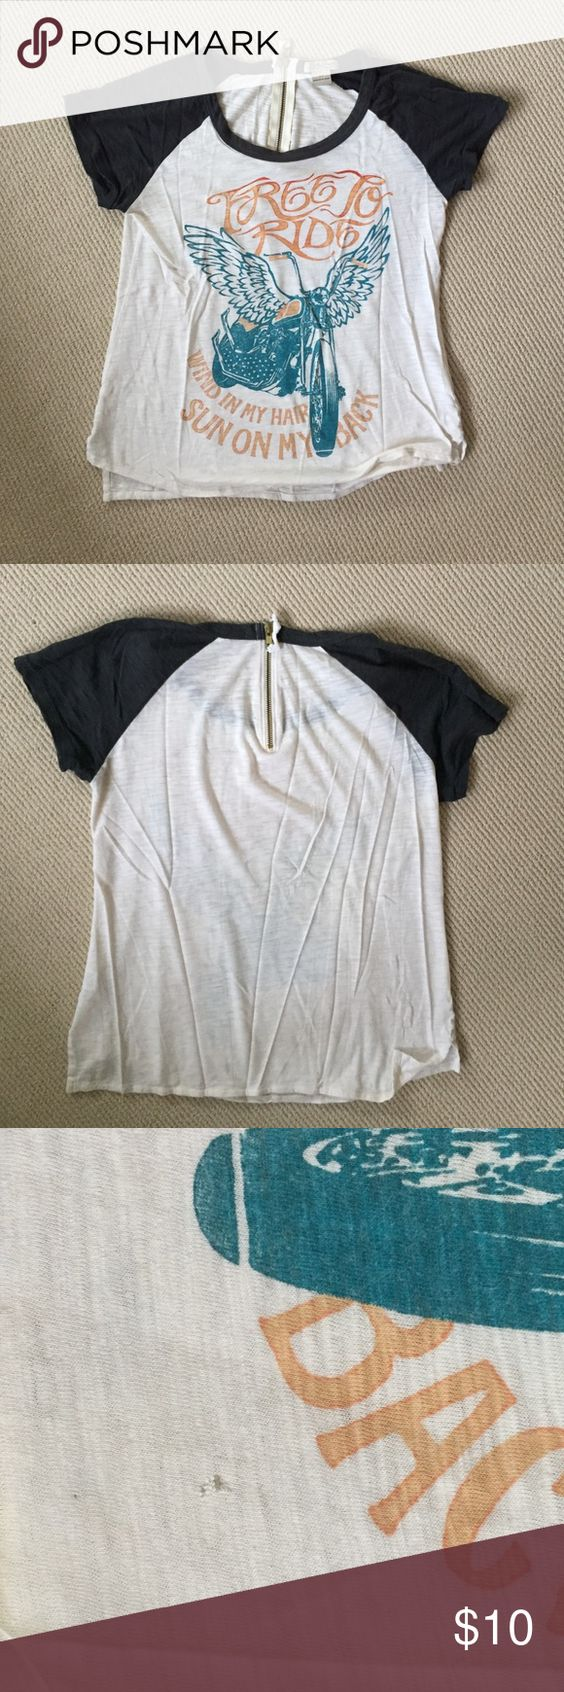 Lucky Brand t-shirt with back zip detail Super cute shirt with a few small holes in it as you can see in the last two pics. Loose fit. Lucky Brand Tops Tees - Short Sleeve